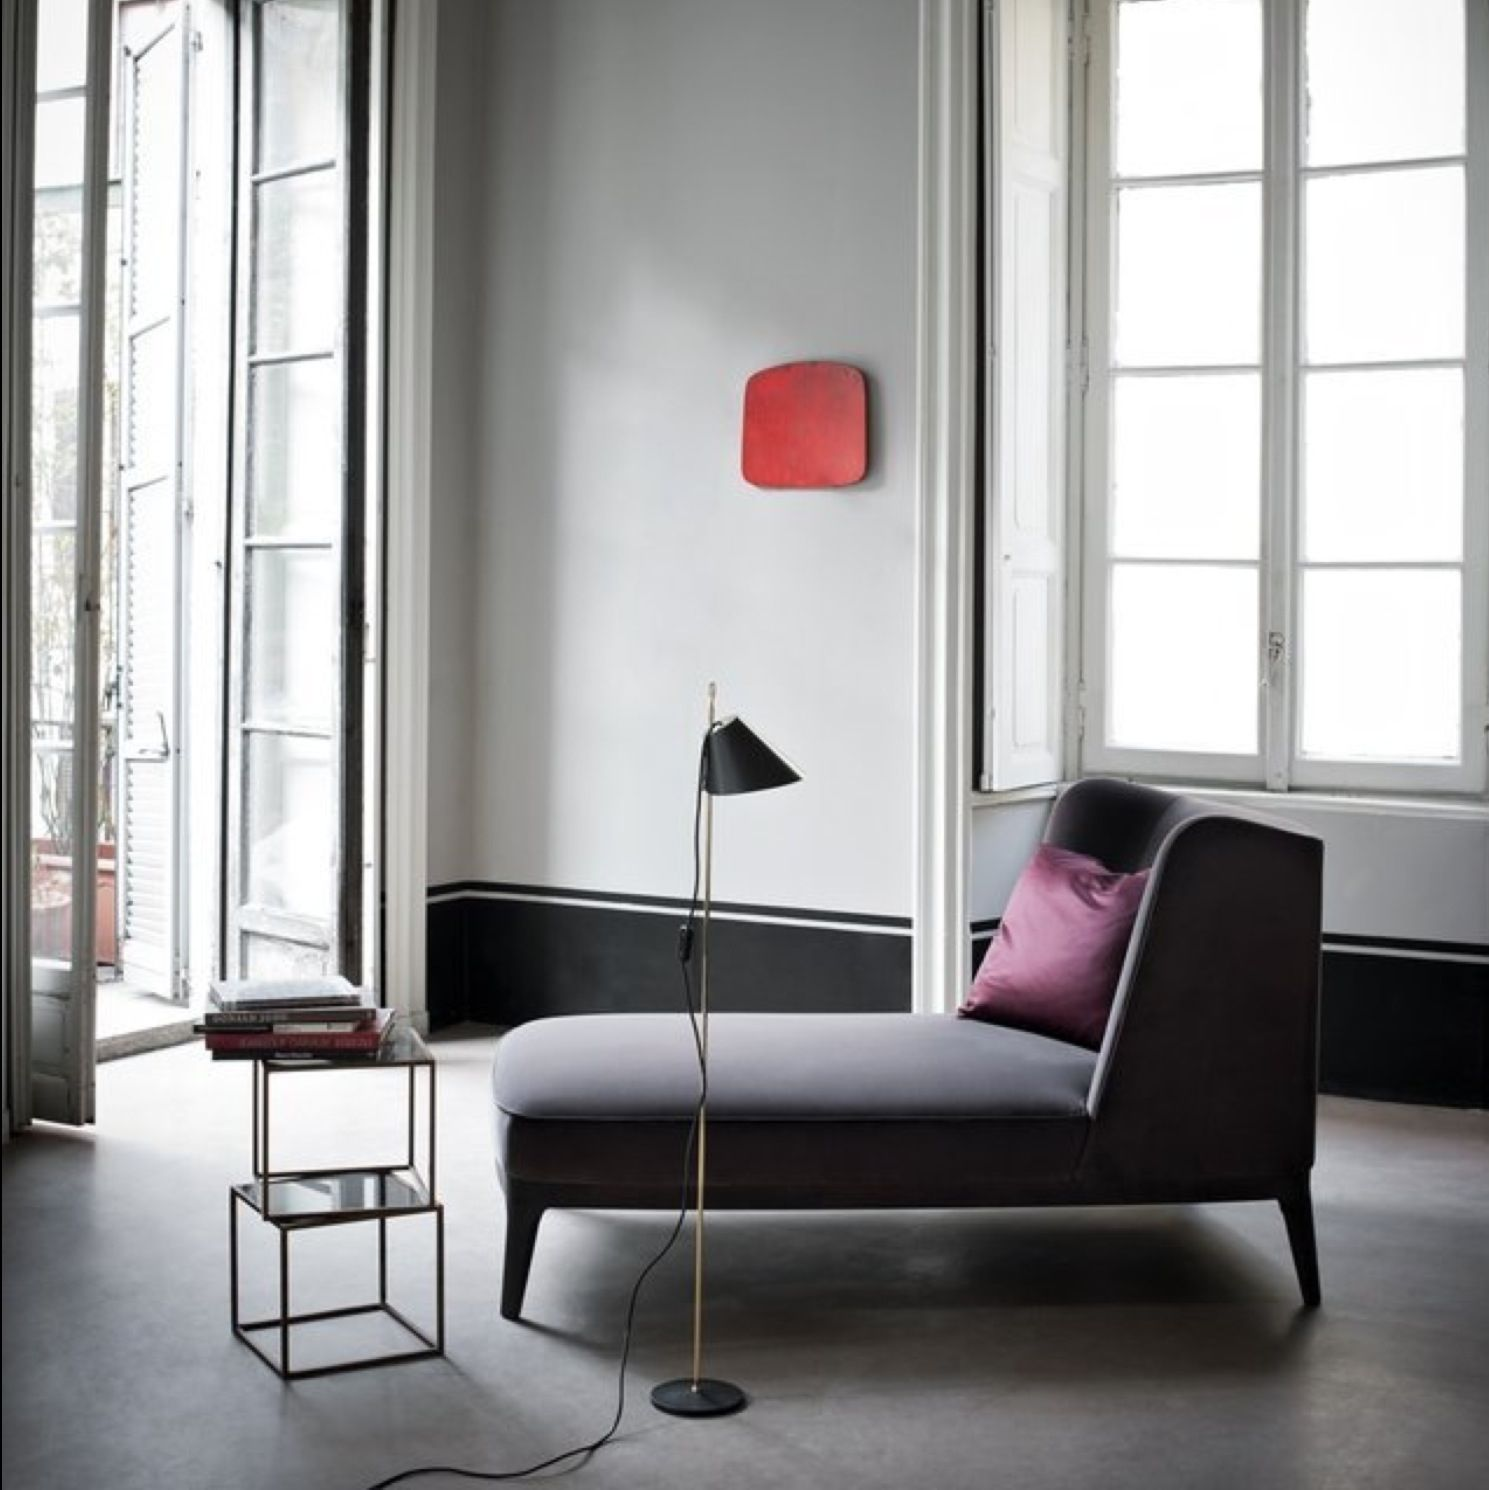 Chaise Design Pop of Colour | Interior decor ideas ...